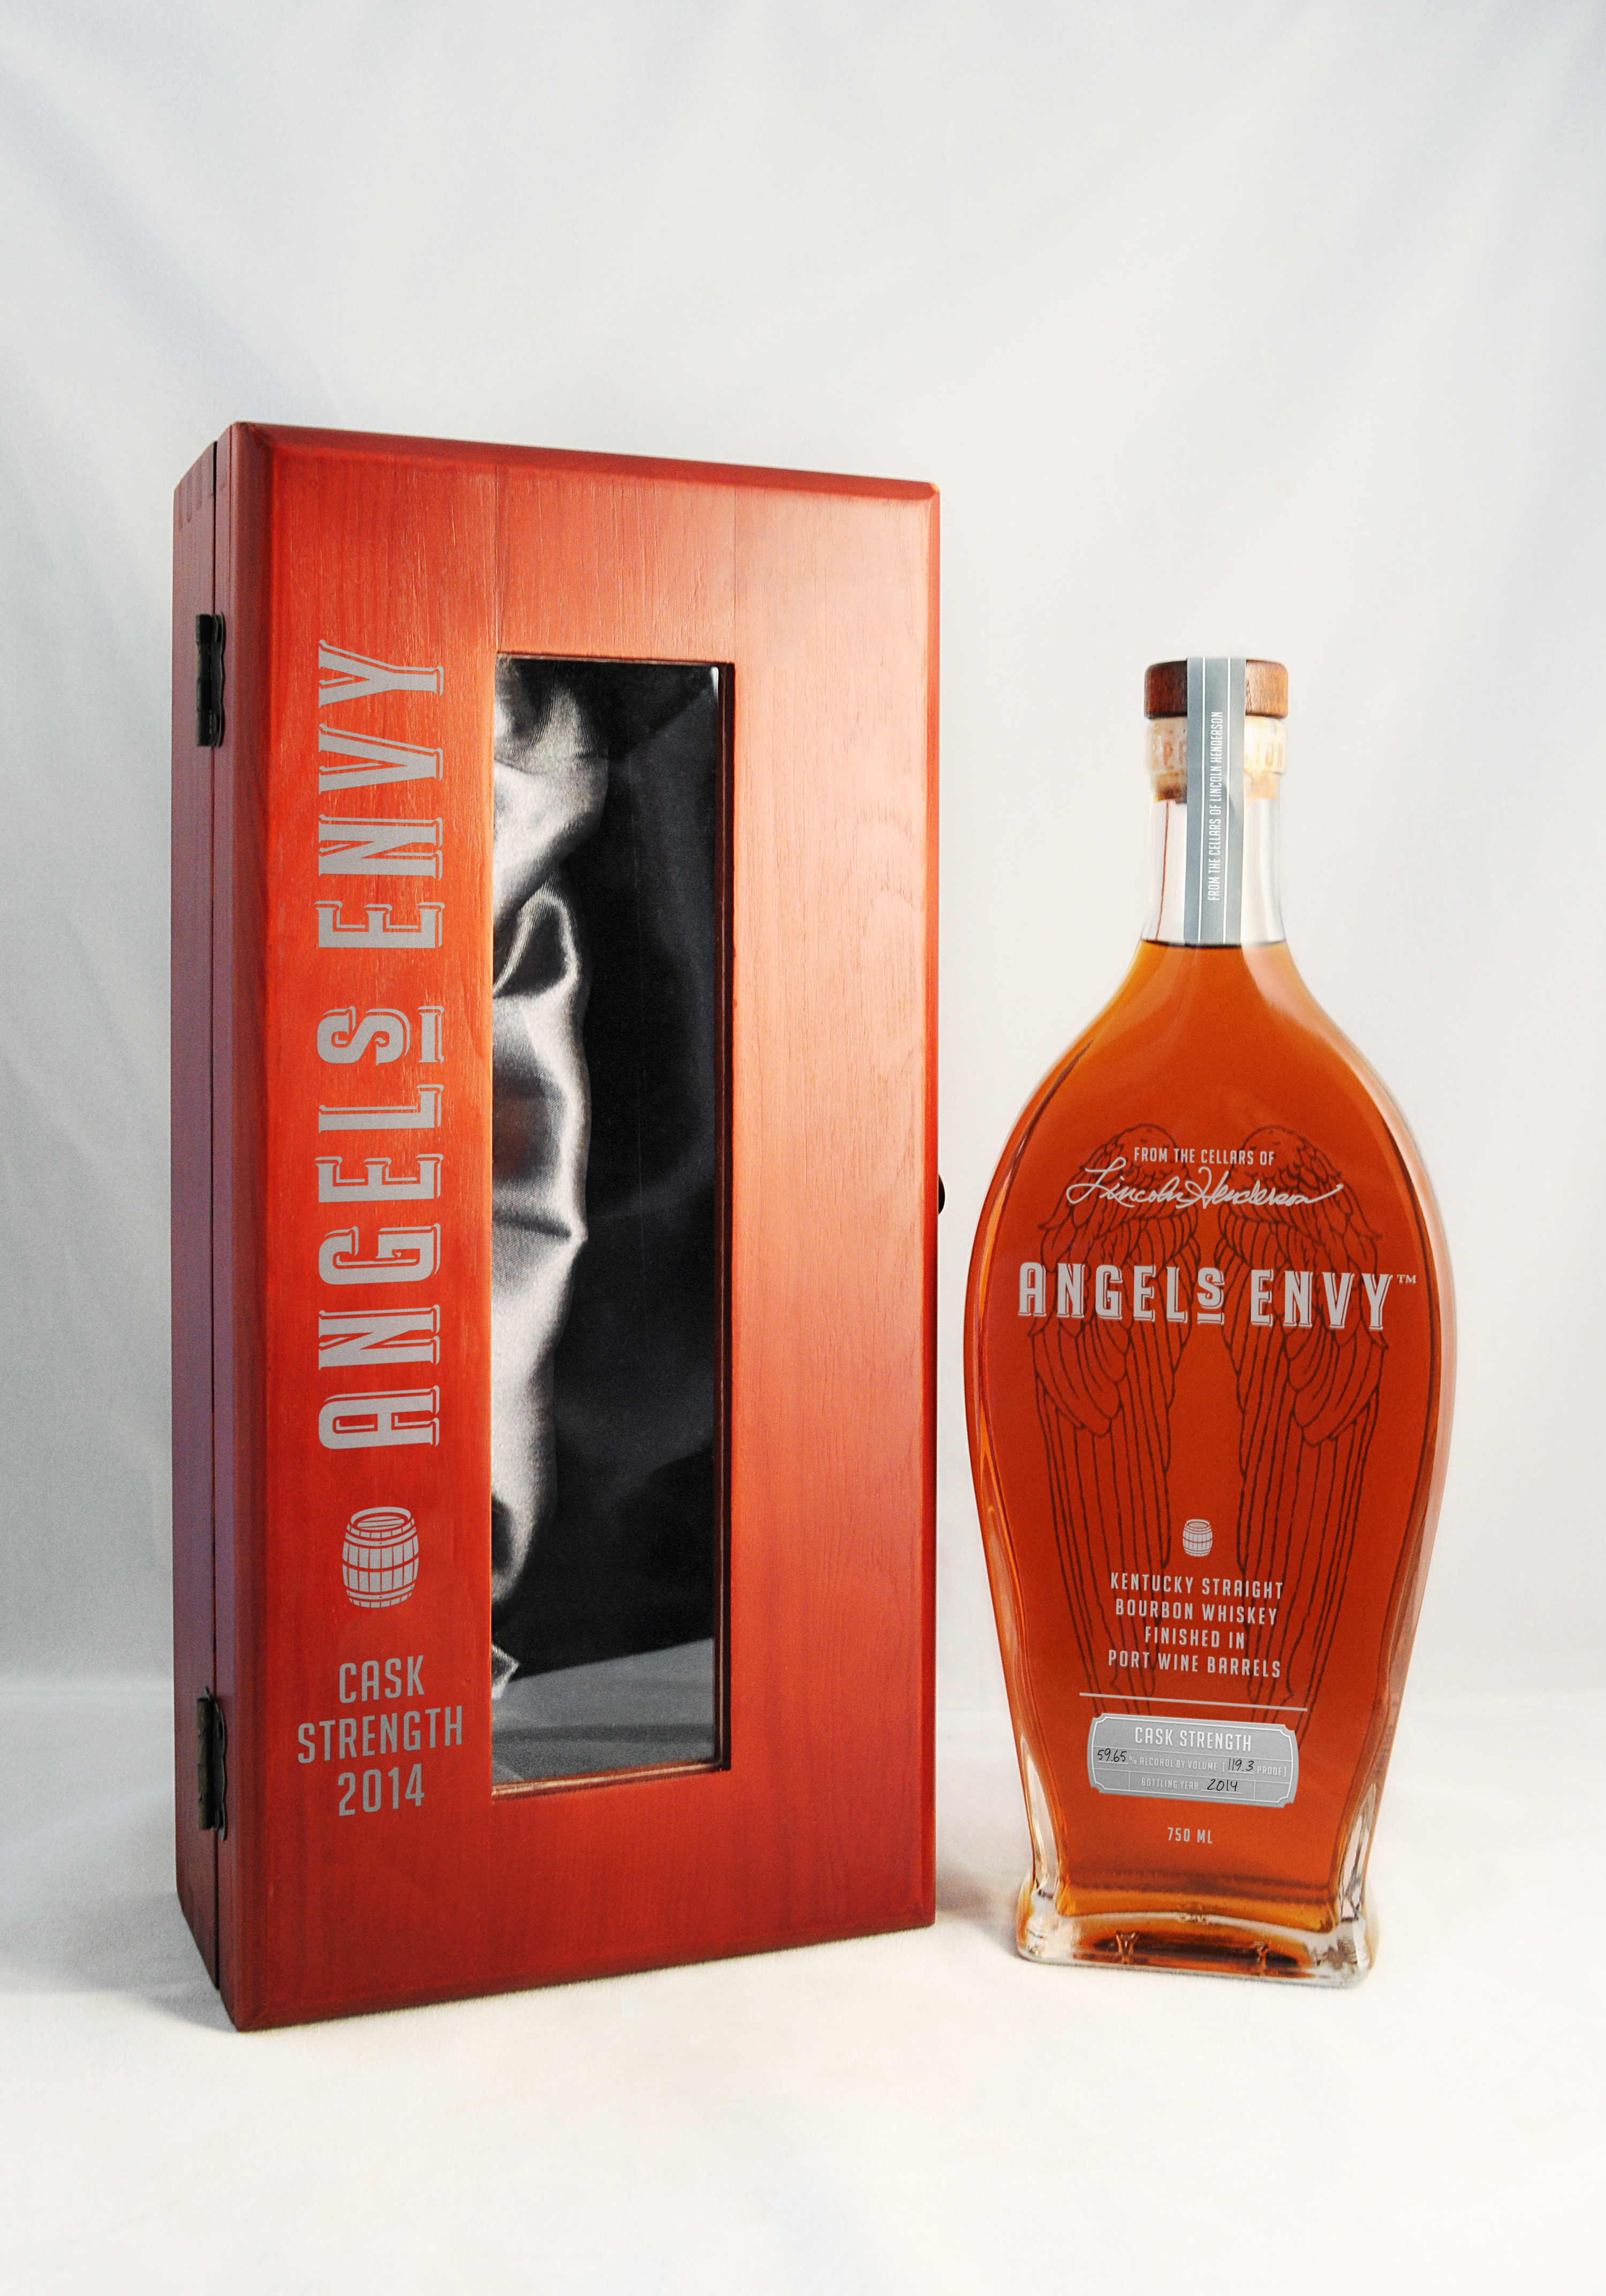 Angel's Envy Cask Strength Bourbon - Limited Edition (2014)